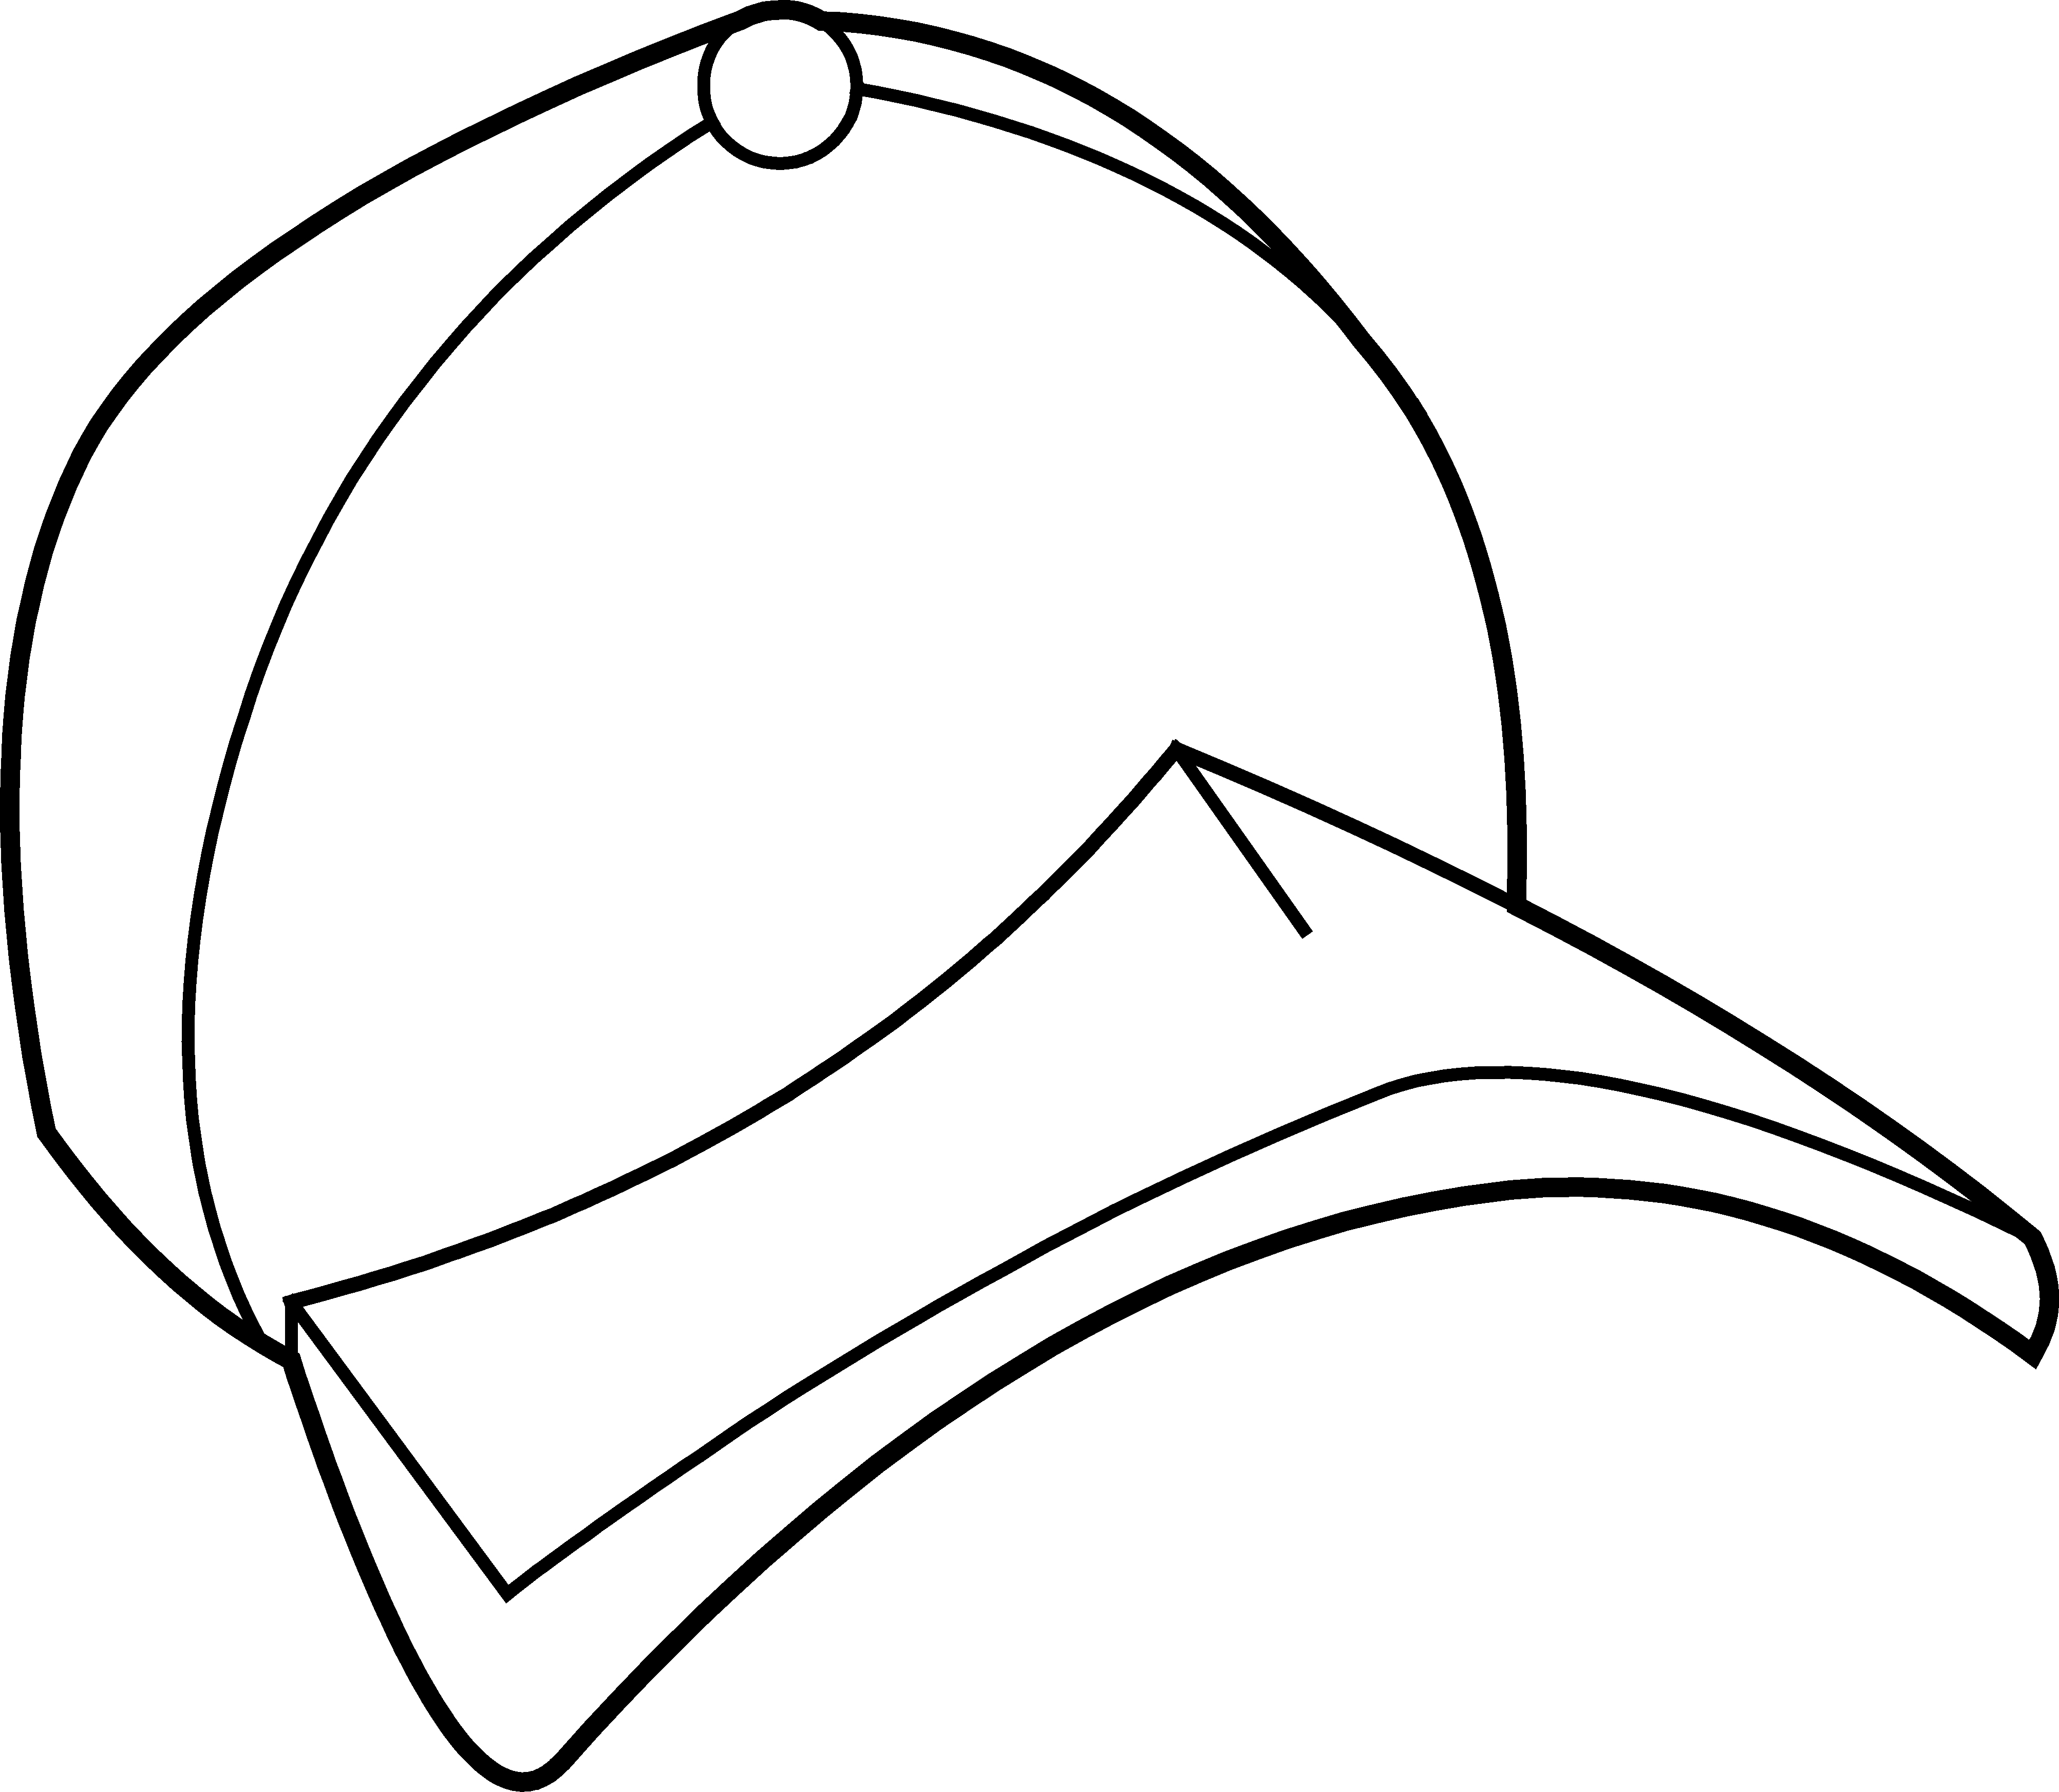 hat coloring page beautiful hat for girls coloring page coloring point page coloring hat